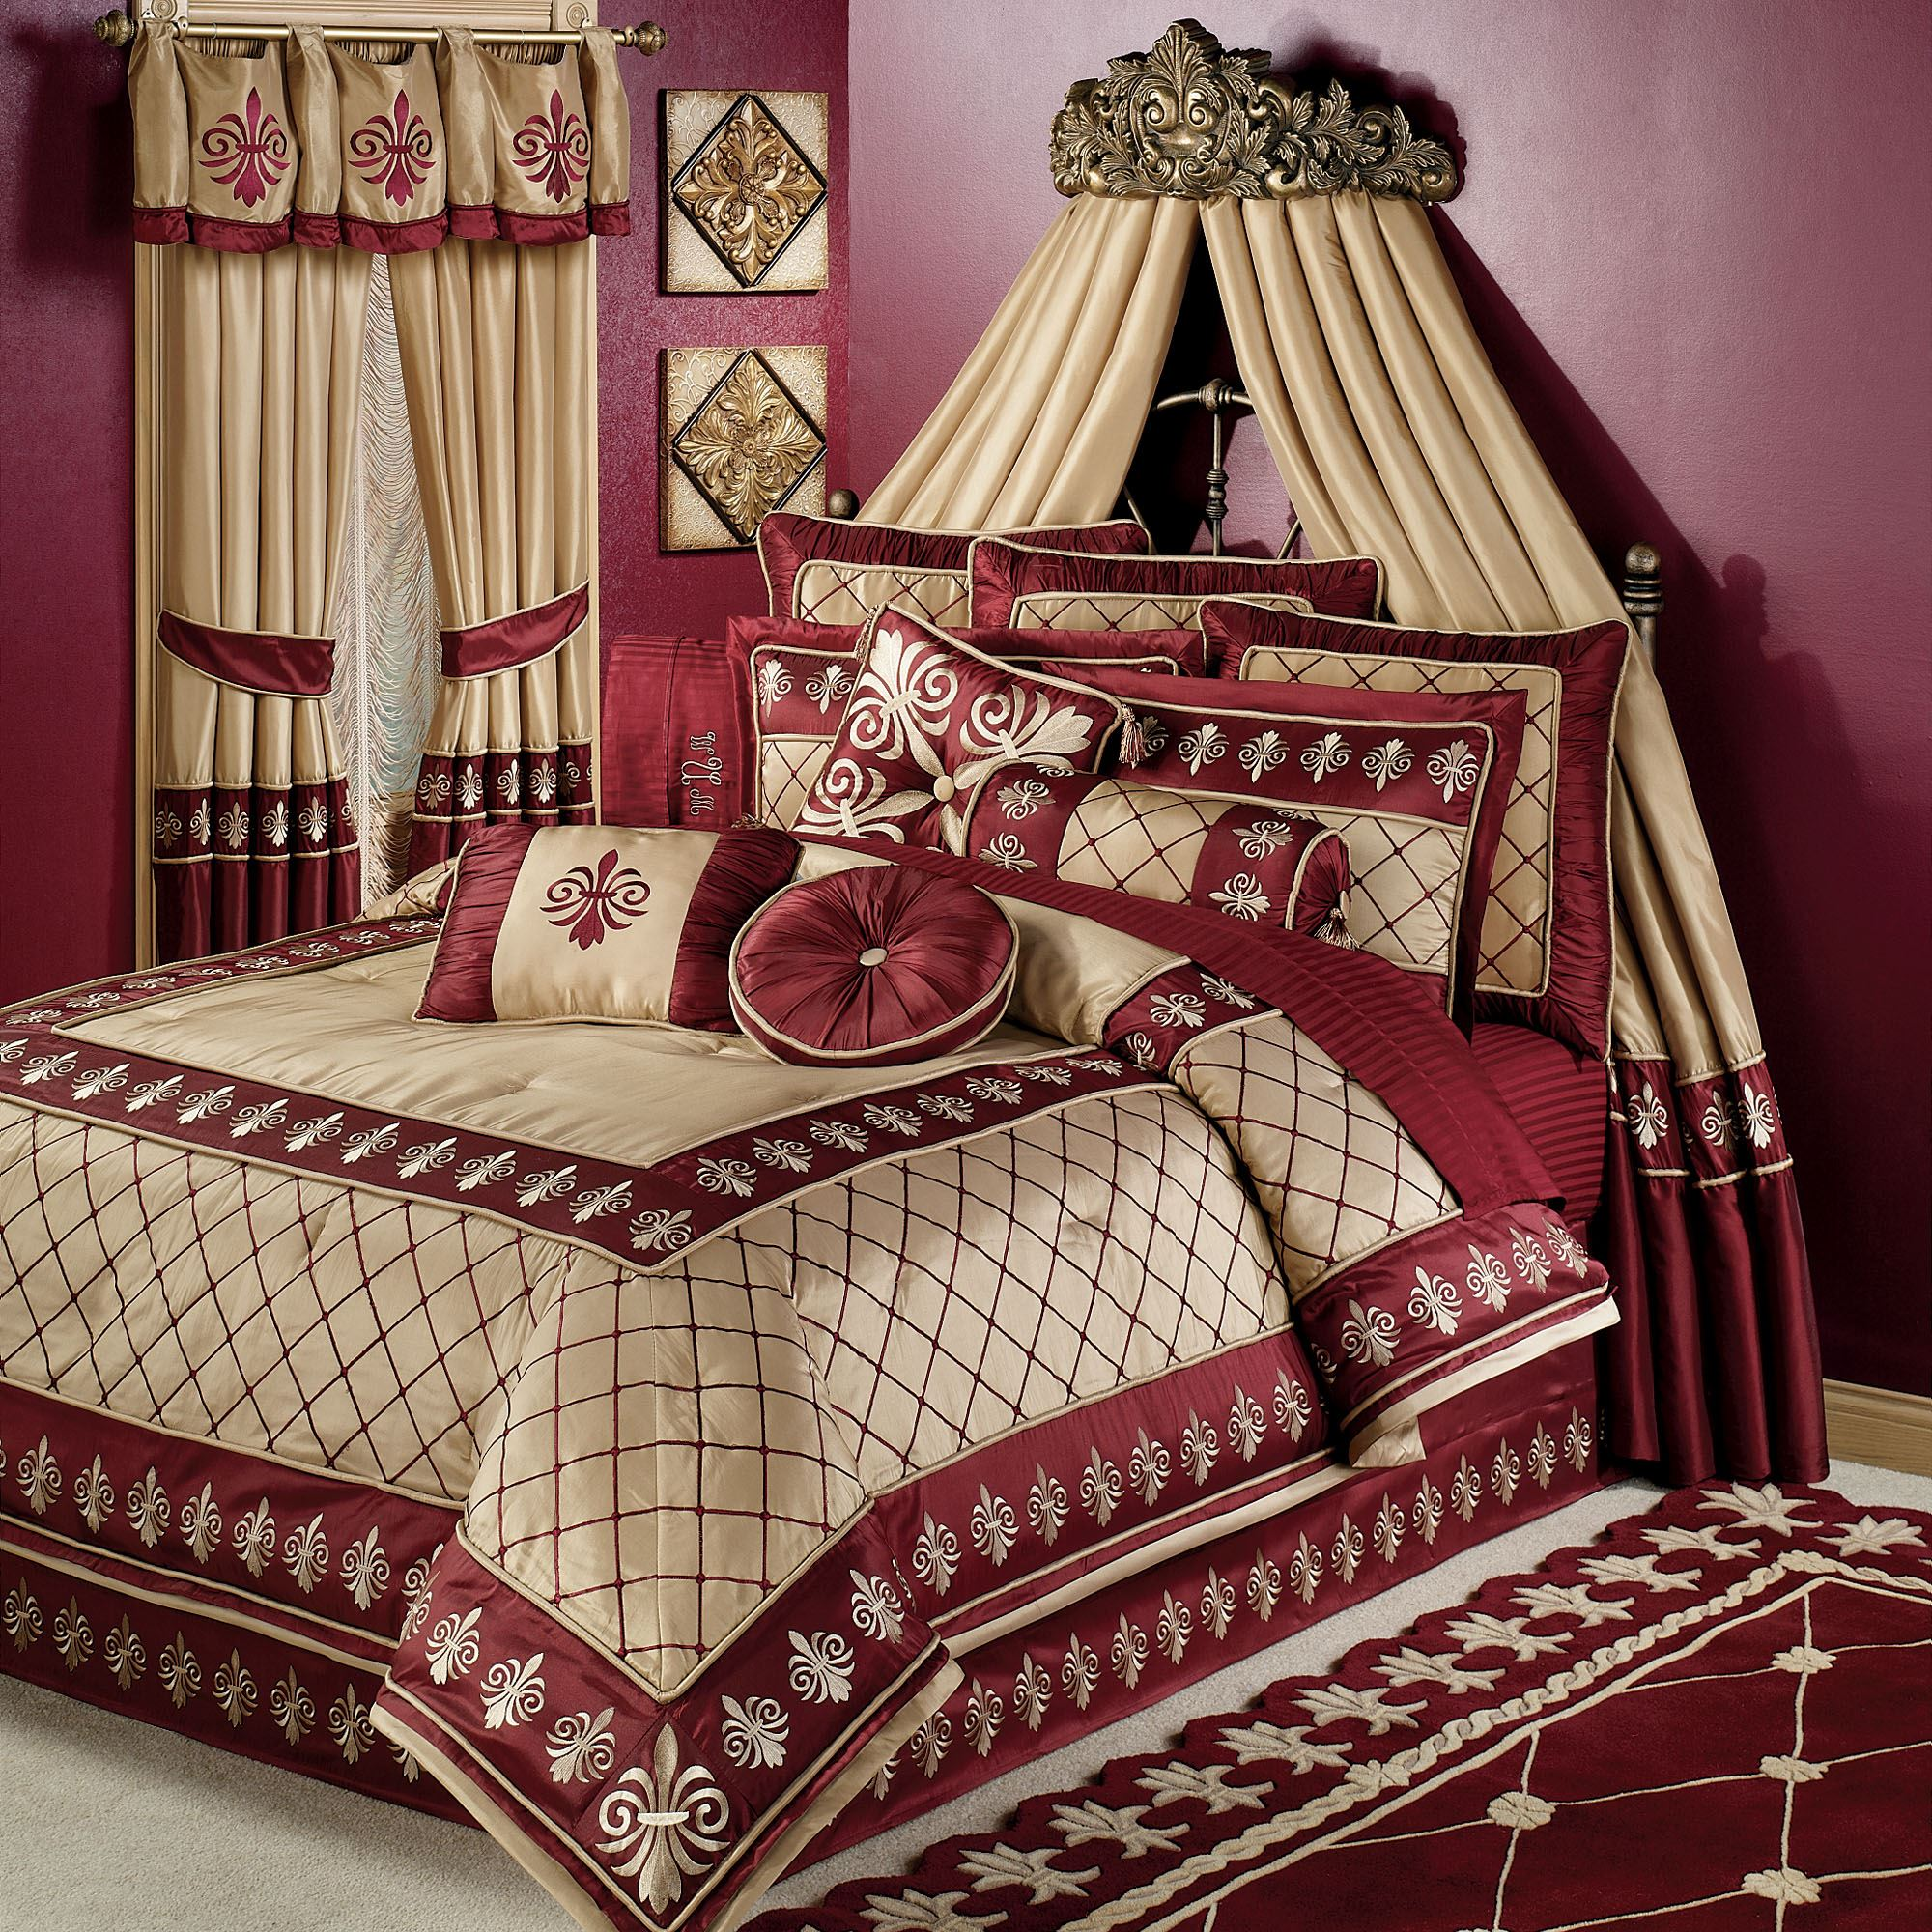 Interior Bedroom Bedding comforters and comforter sets touch of class roman empire set